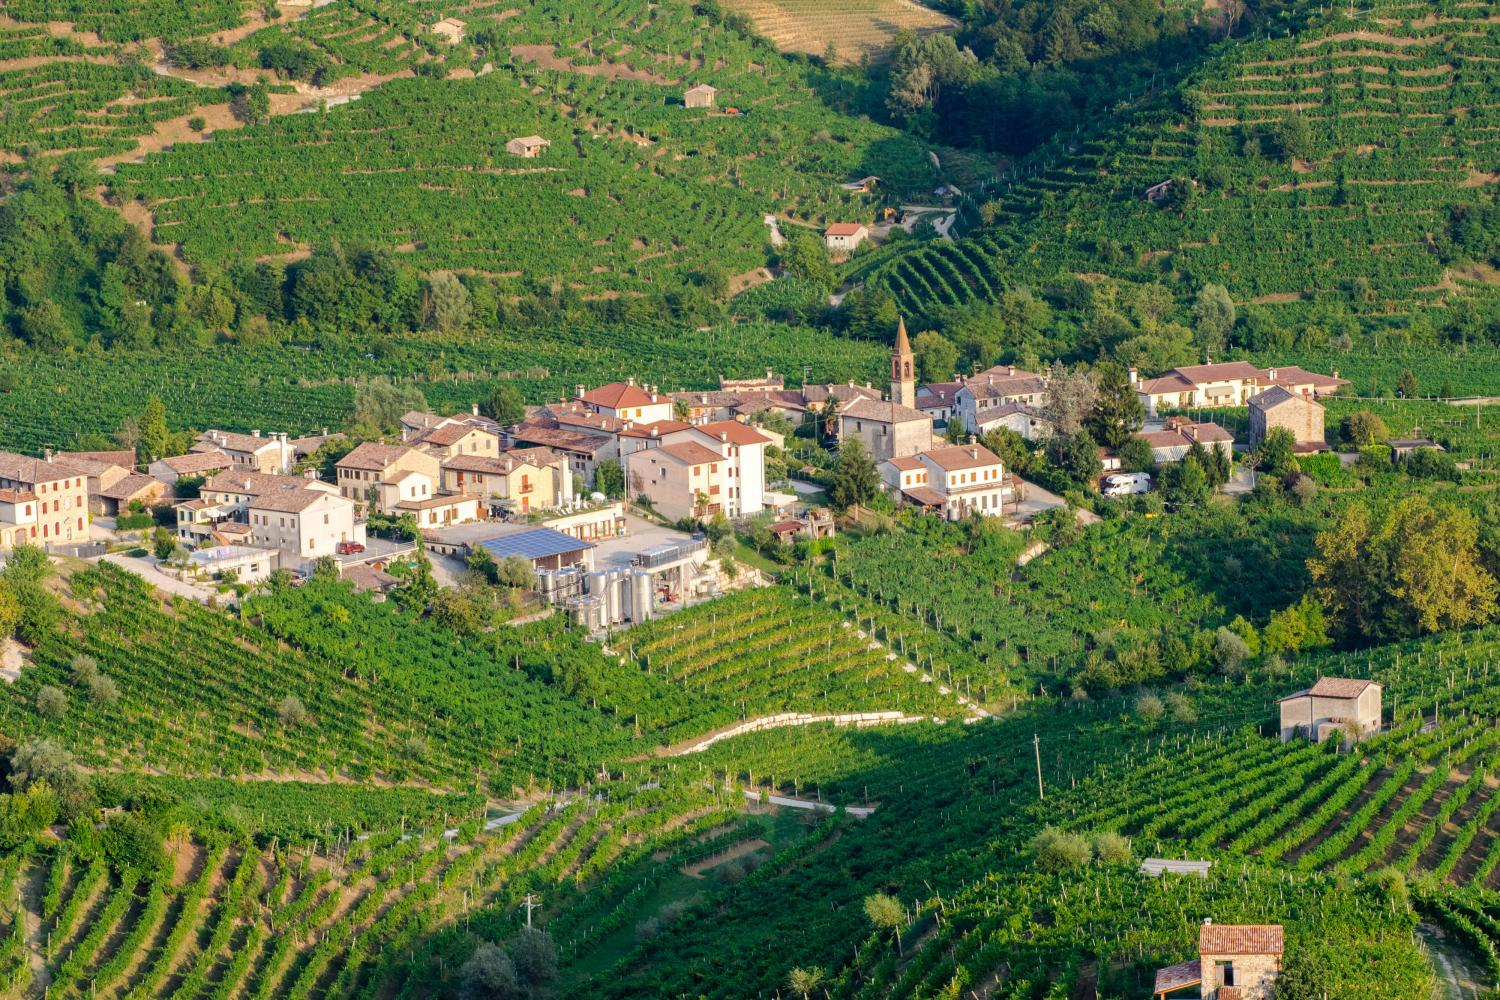 Small Group Hill Towns of Veneto Venice Day Trips - Marostica